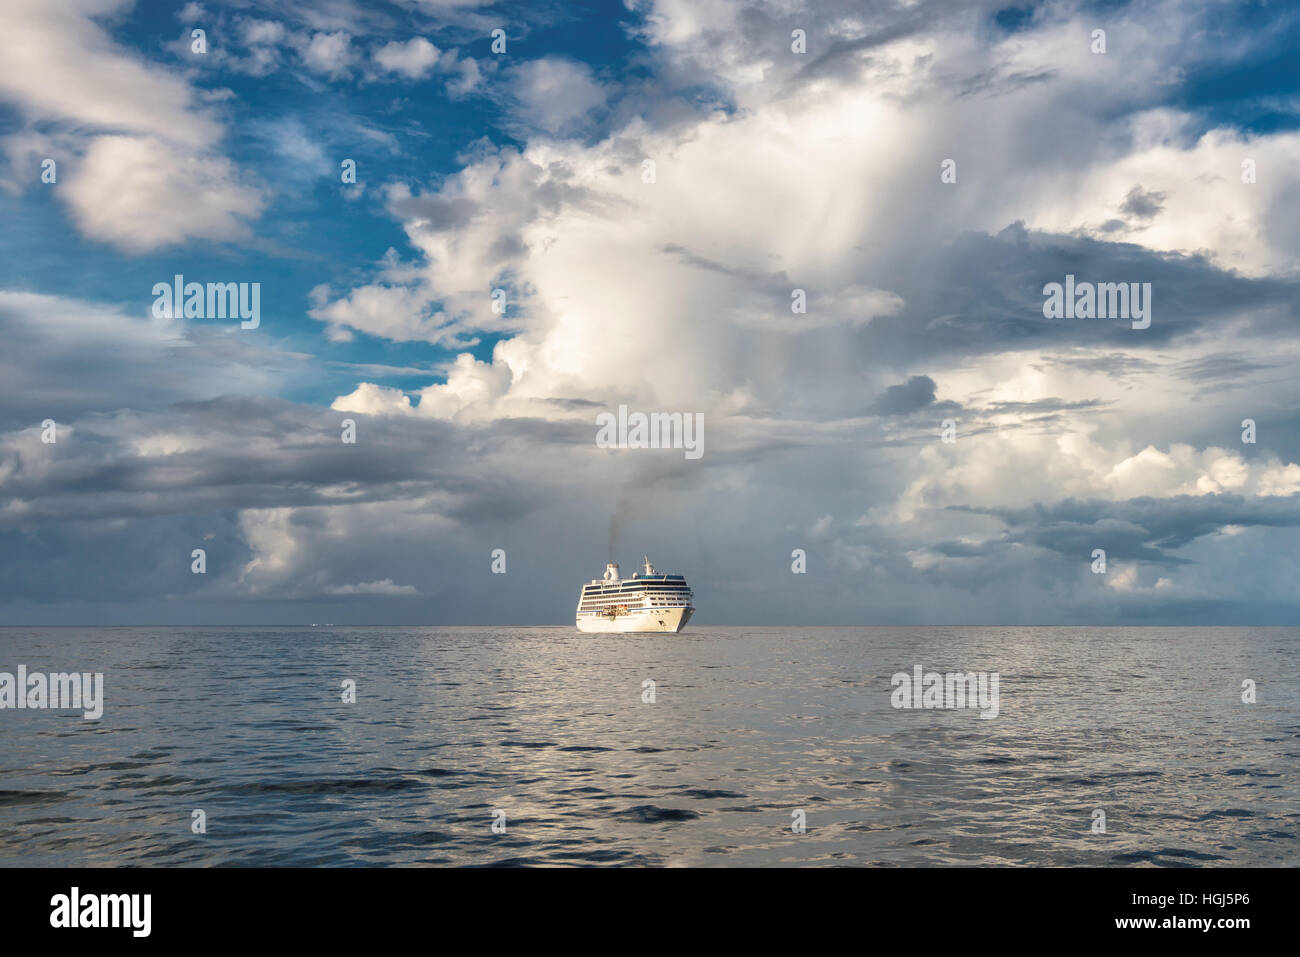 Cruise ship in the ocean - Stock Image